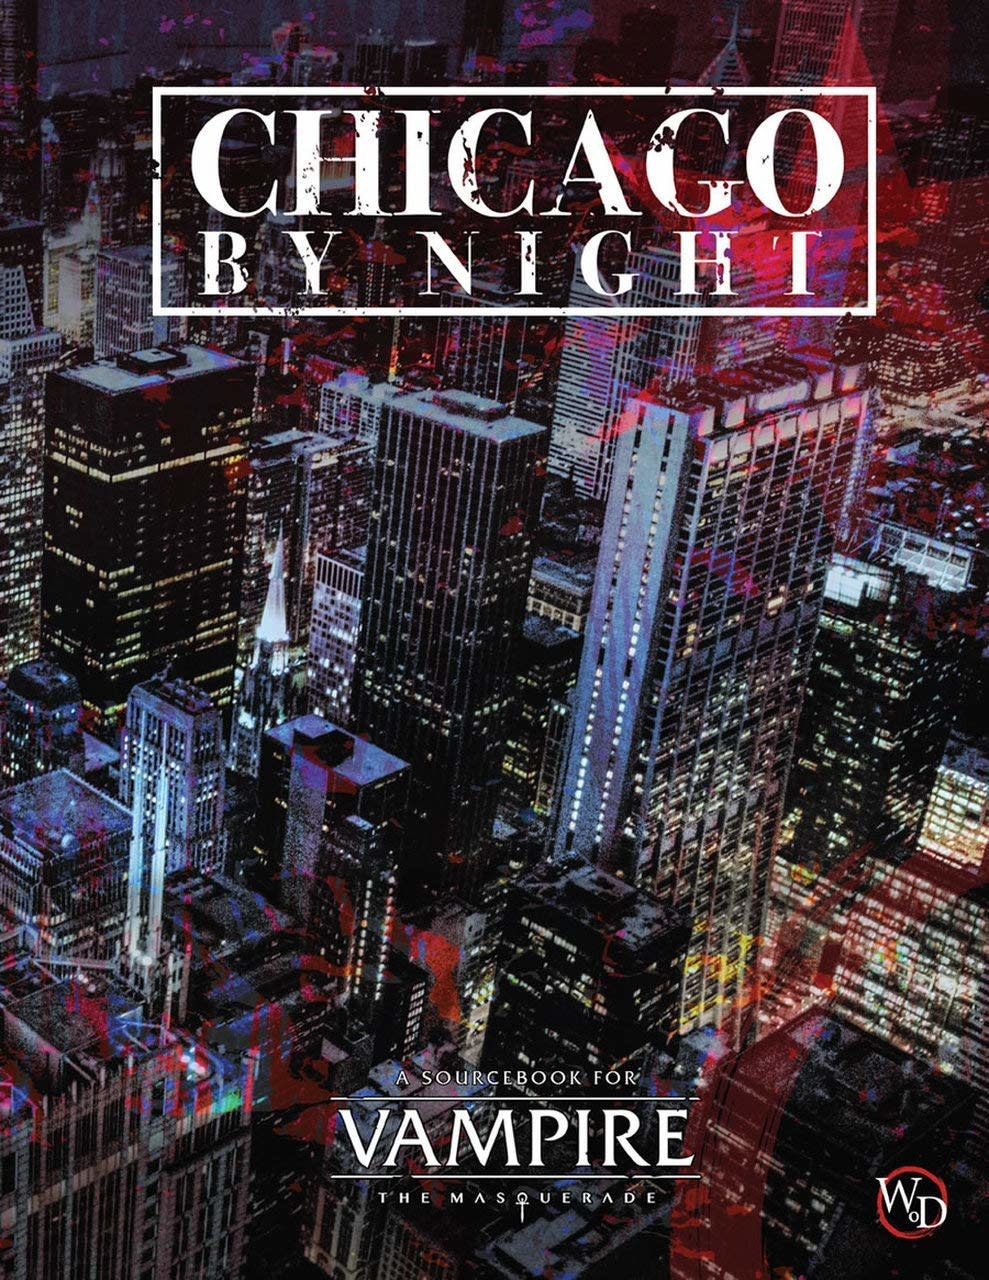 Vampire: The Masquerade - Chicago By Night (HC)